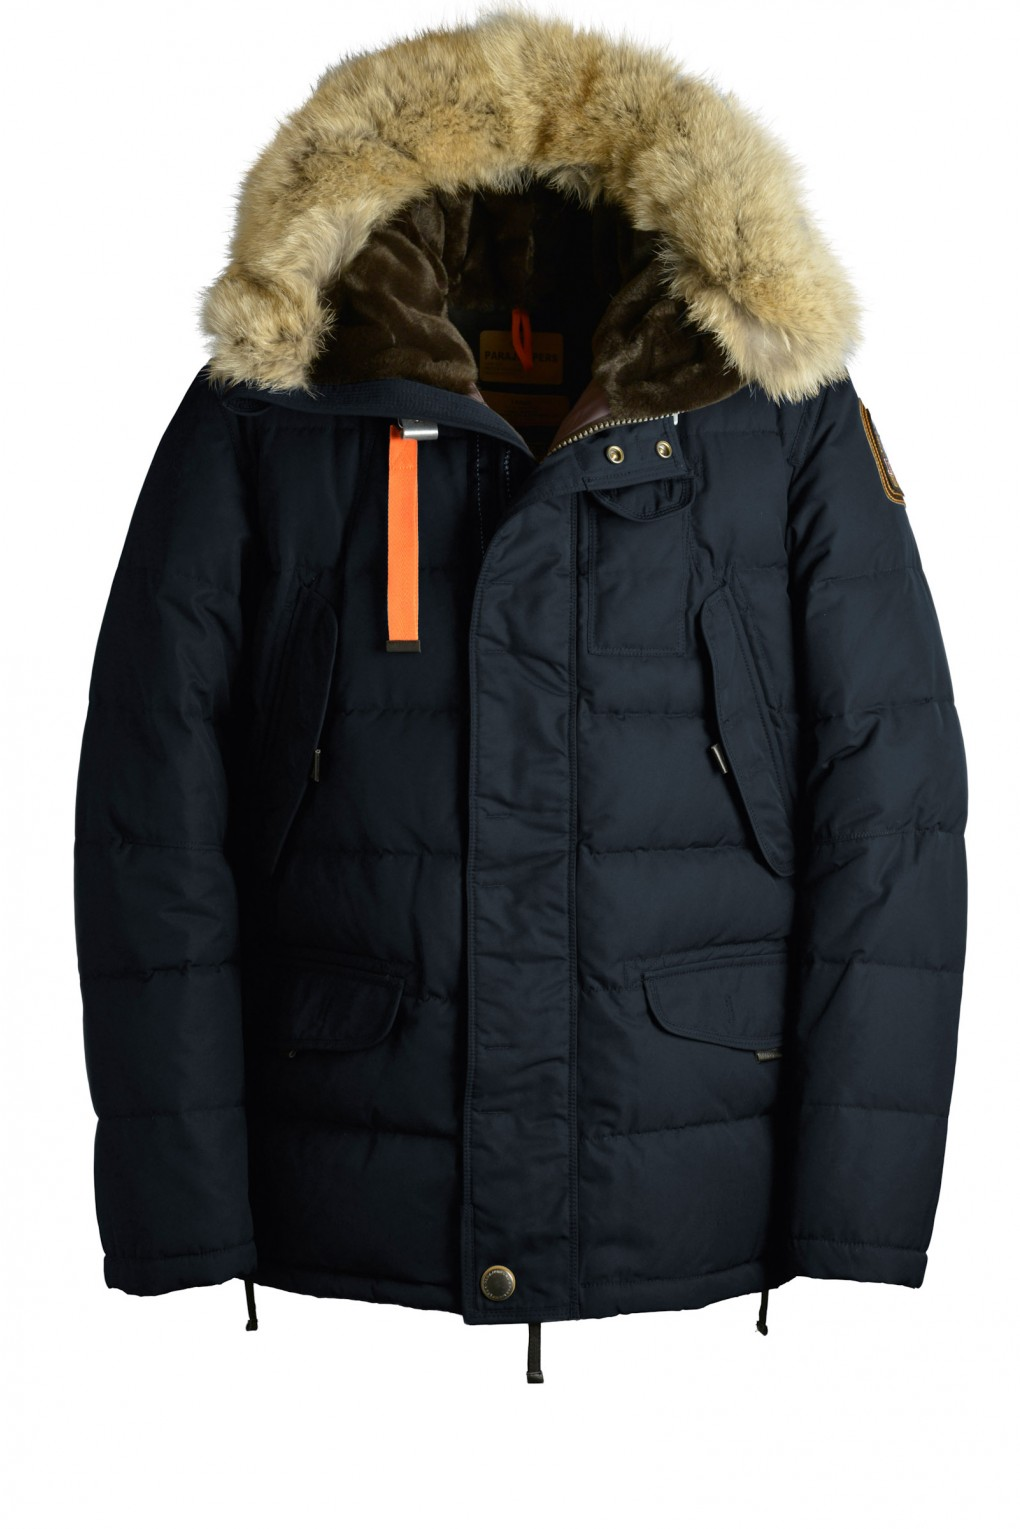 parajumpers DEER man outerwear Navy